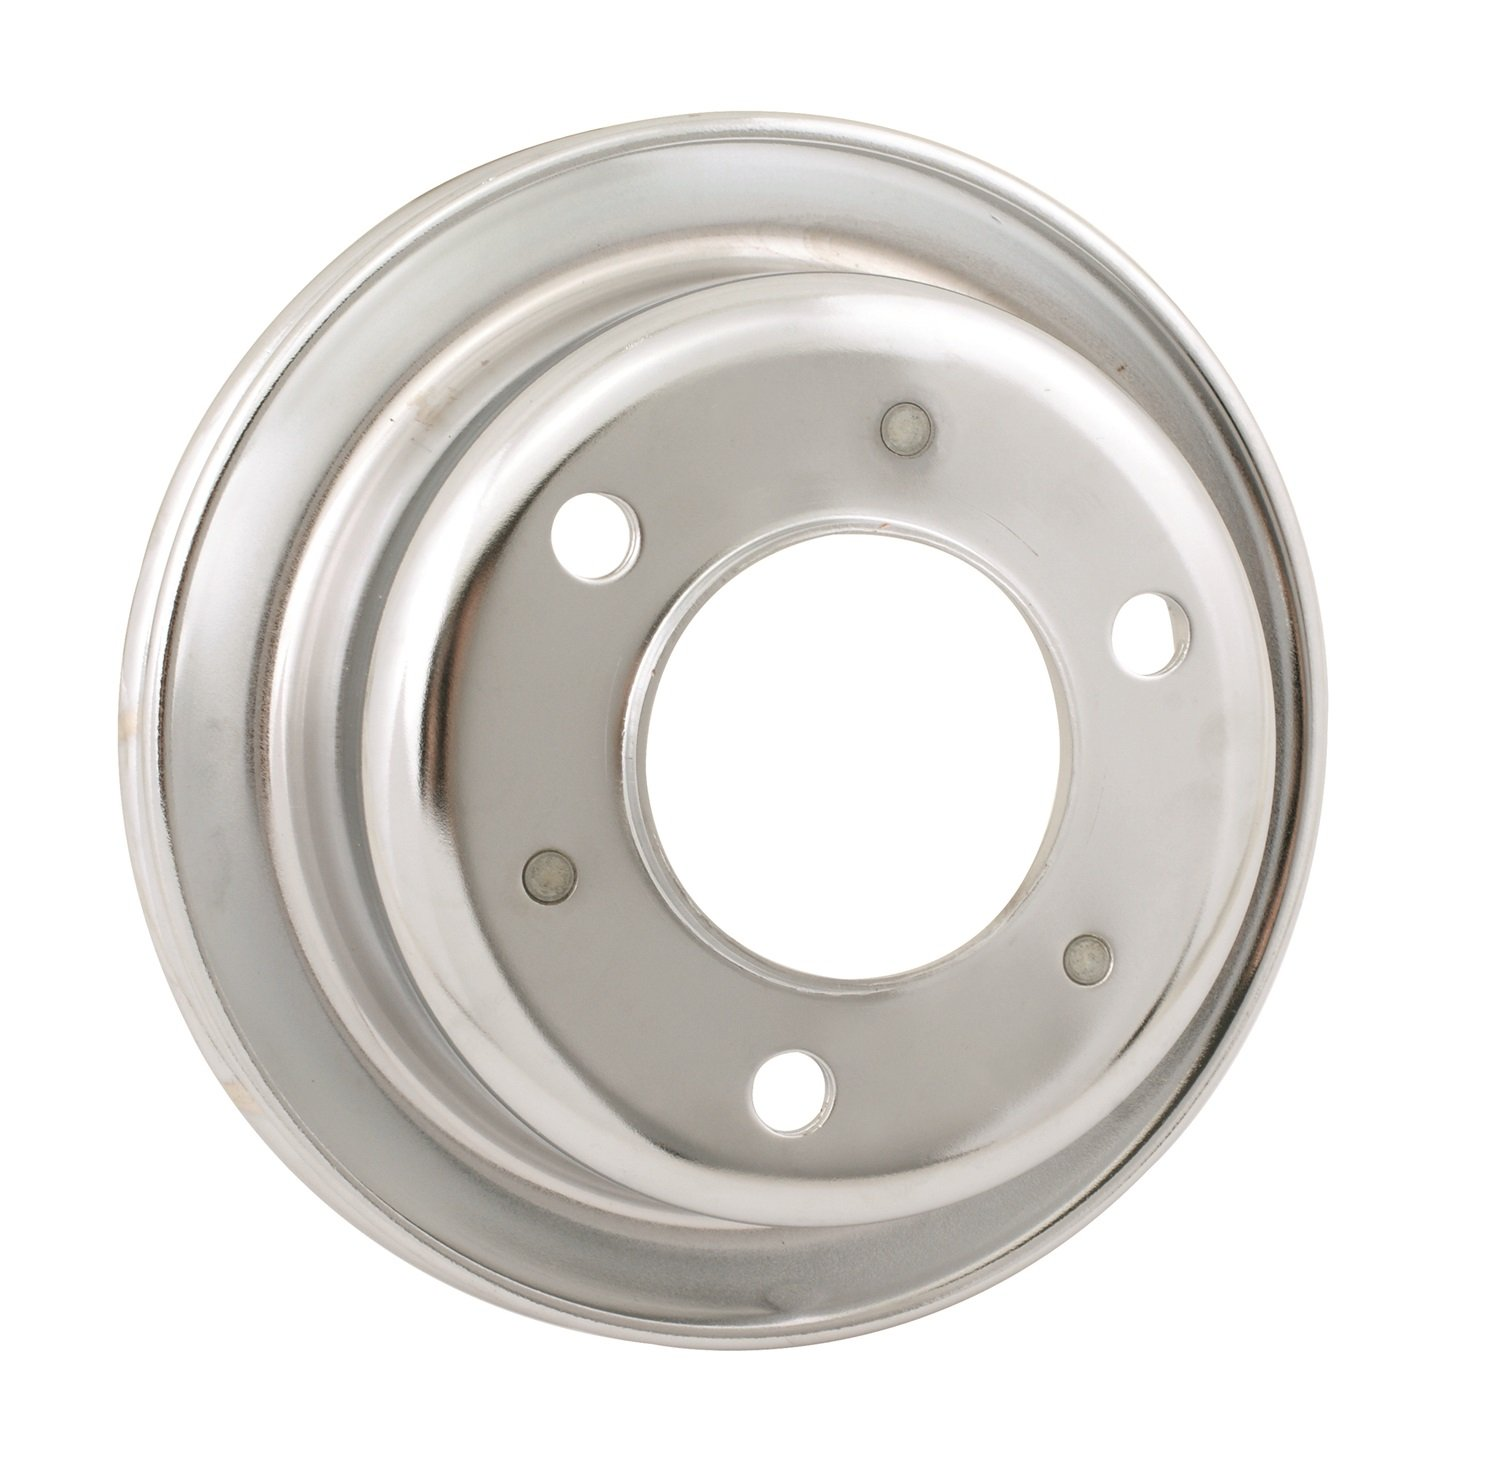 Mr. Gasket 8827 Chrome Plated Steel Engine Pulley